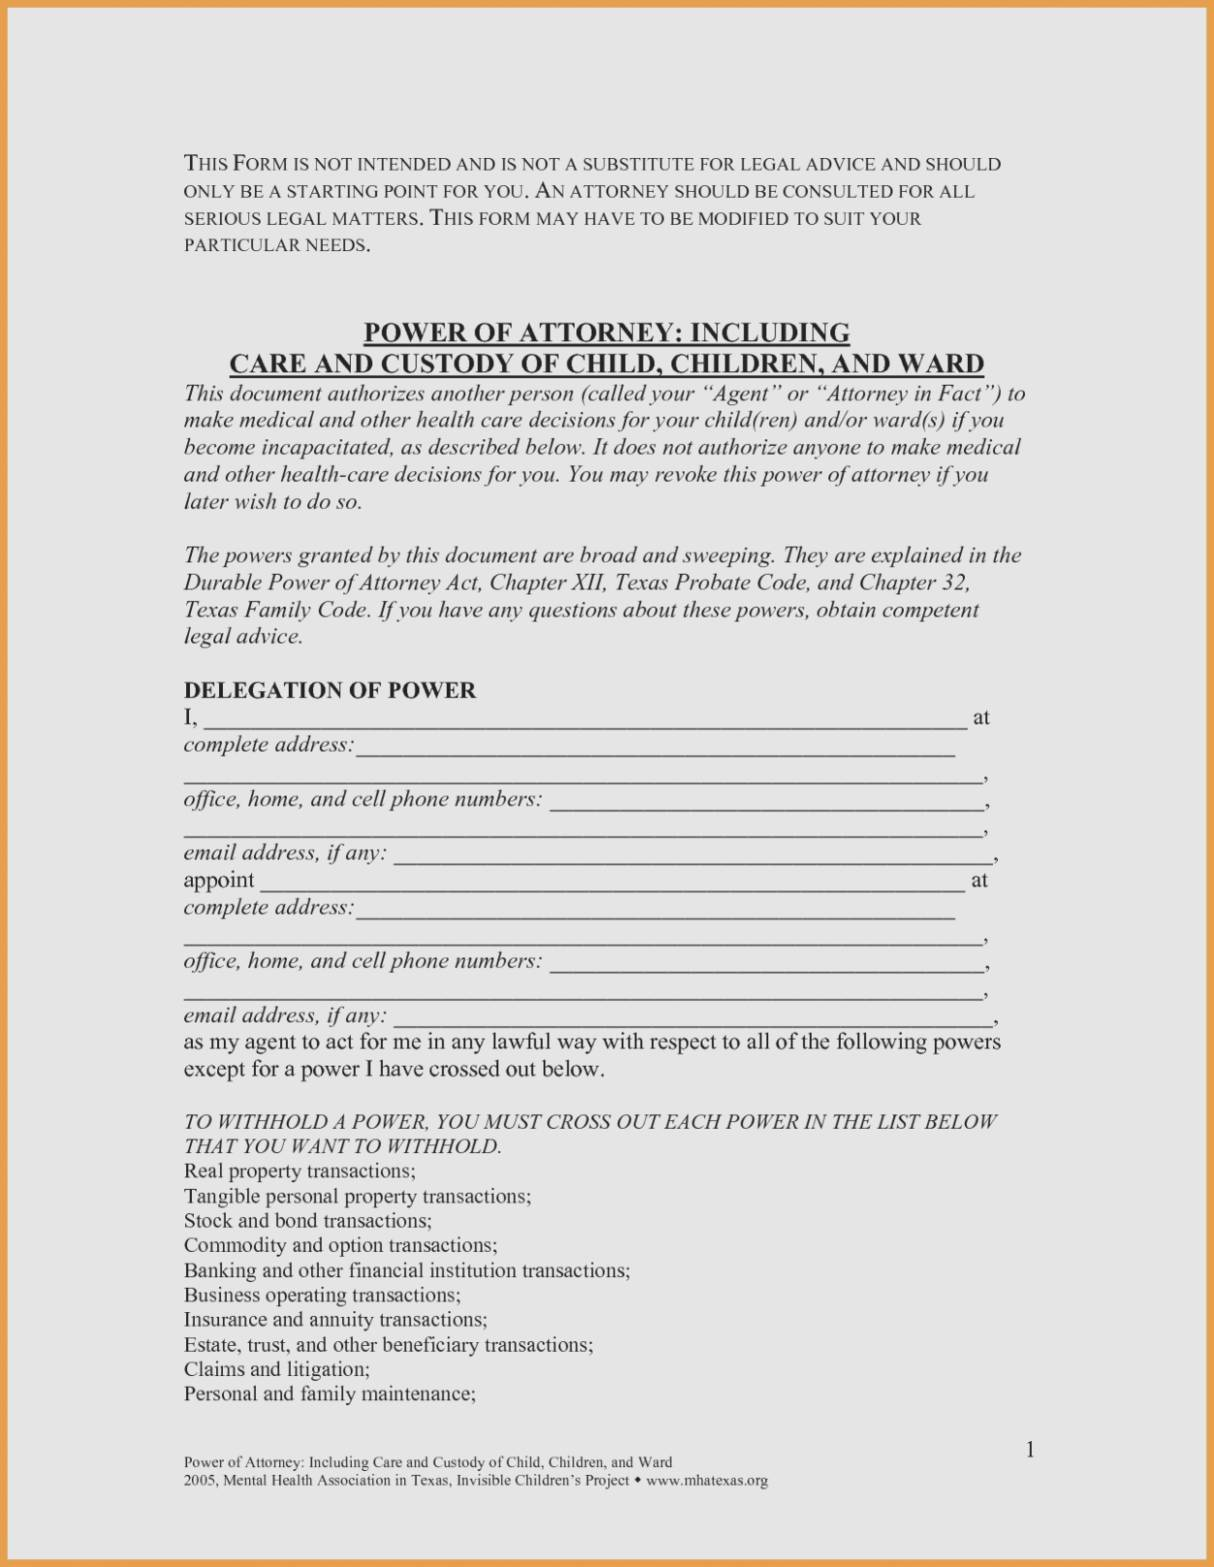 Power Of Attorney Form Texas For Child